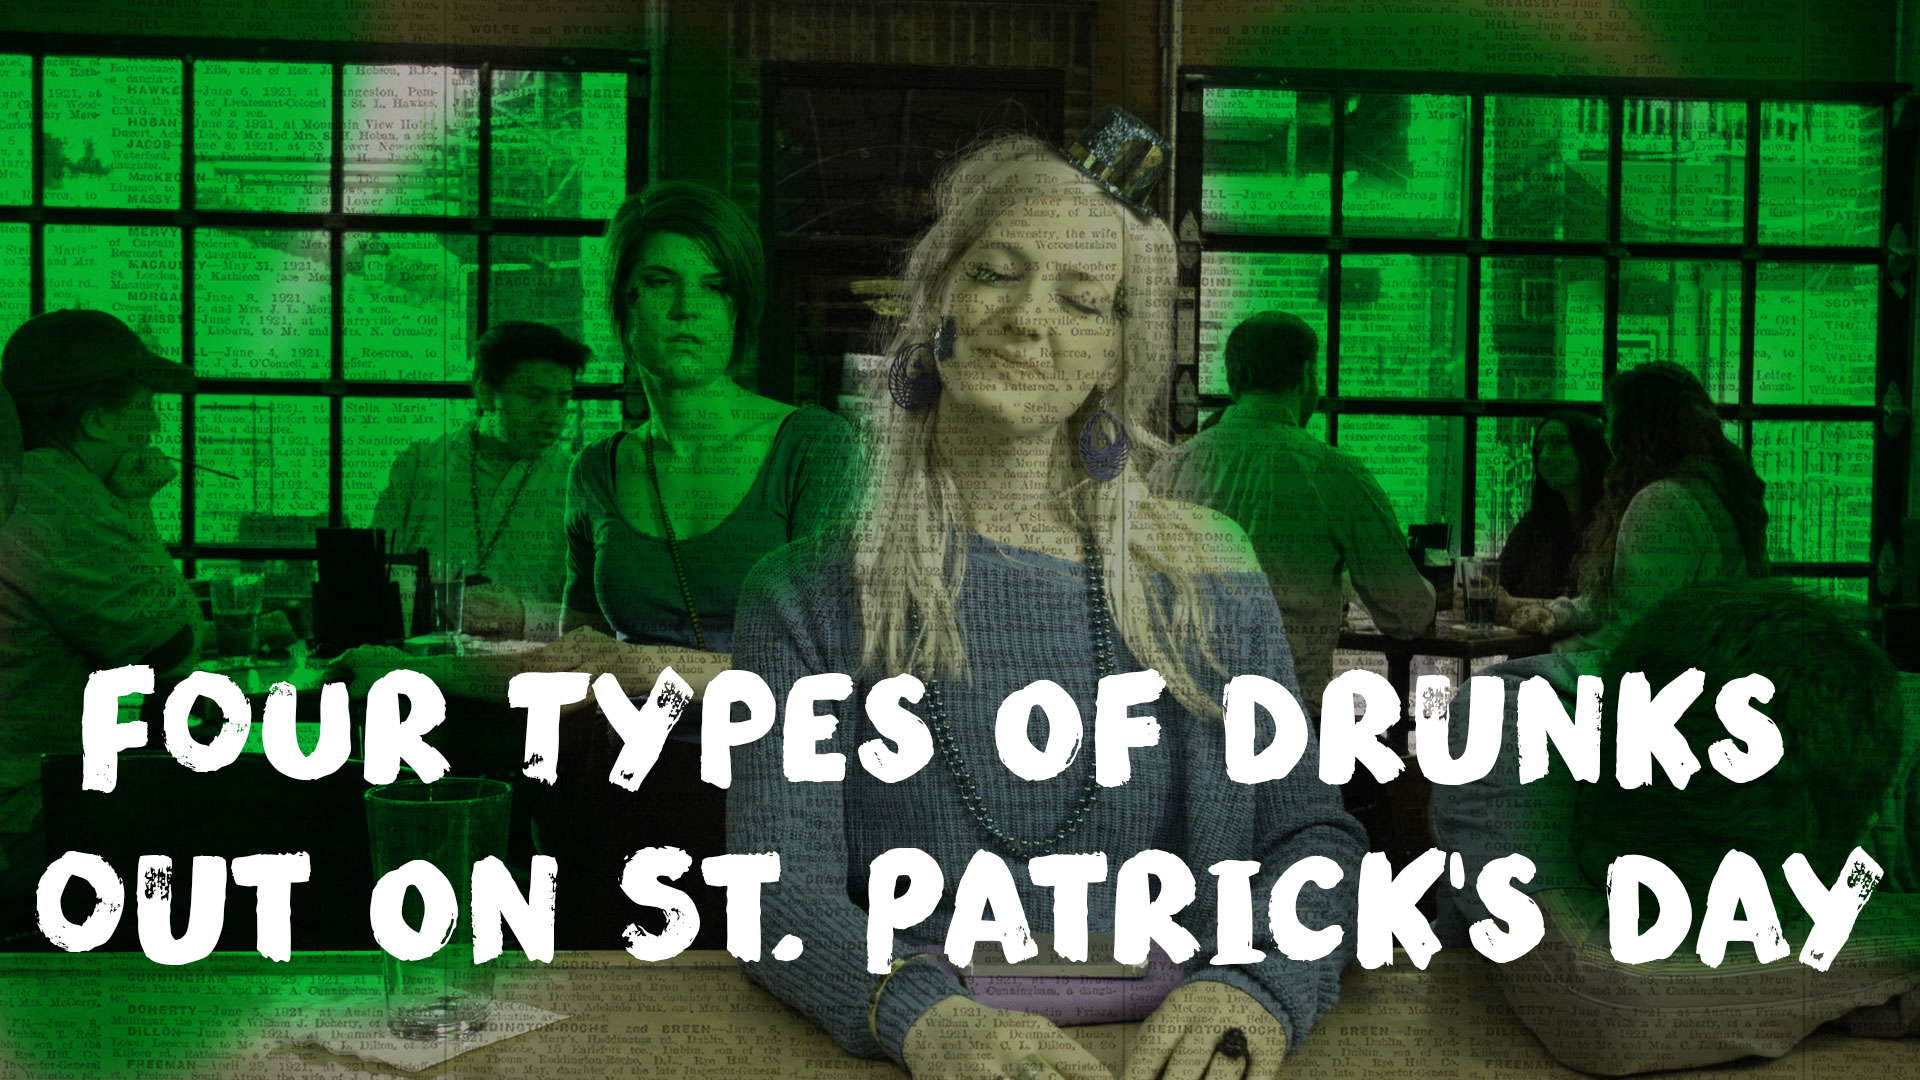 Four Types of Drunks Out on St. Patrick's Day